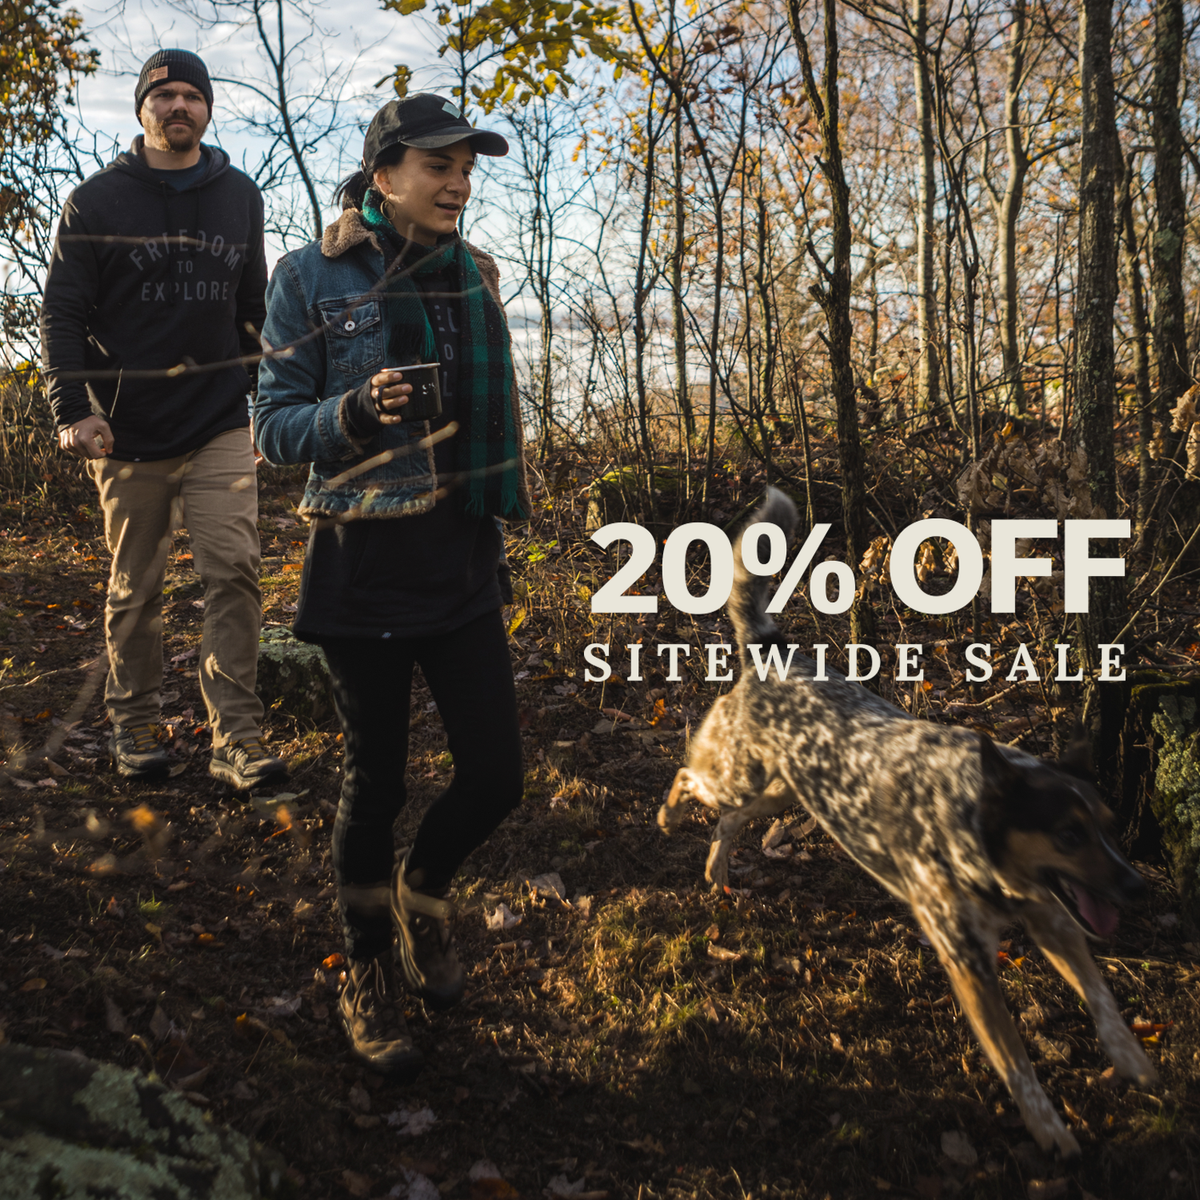 Calling all Explorers to Our 20% Off Sitewide Sale!